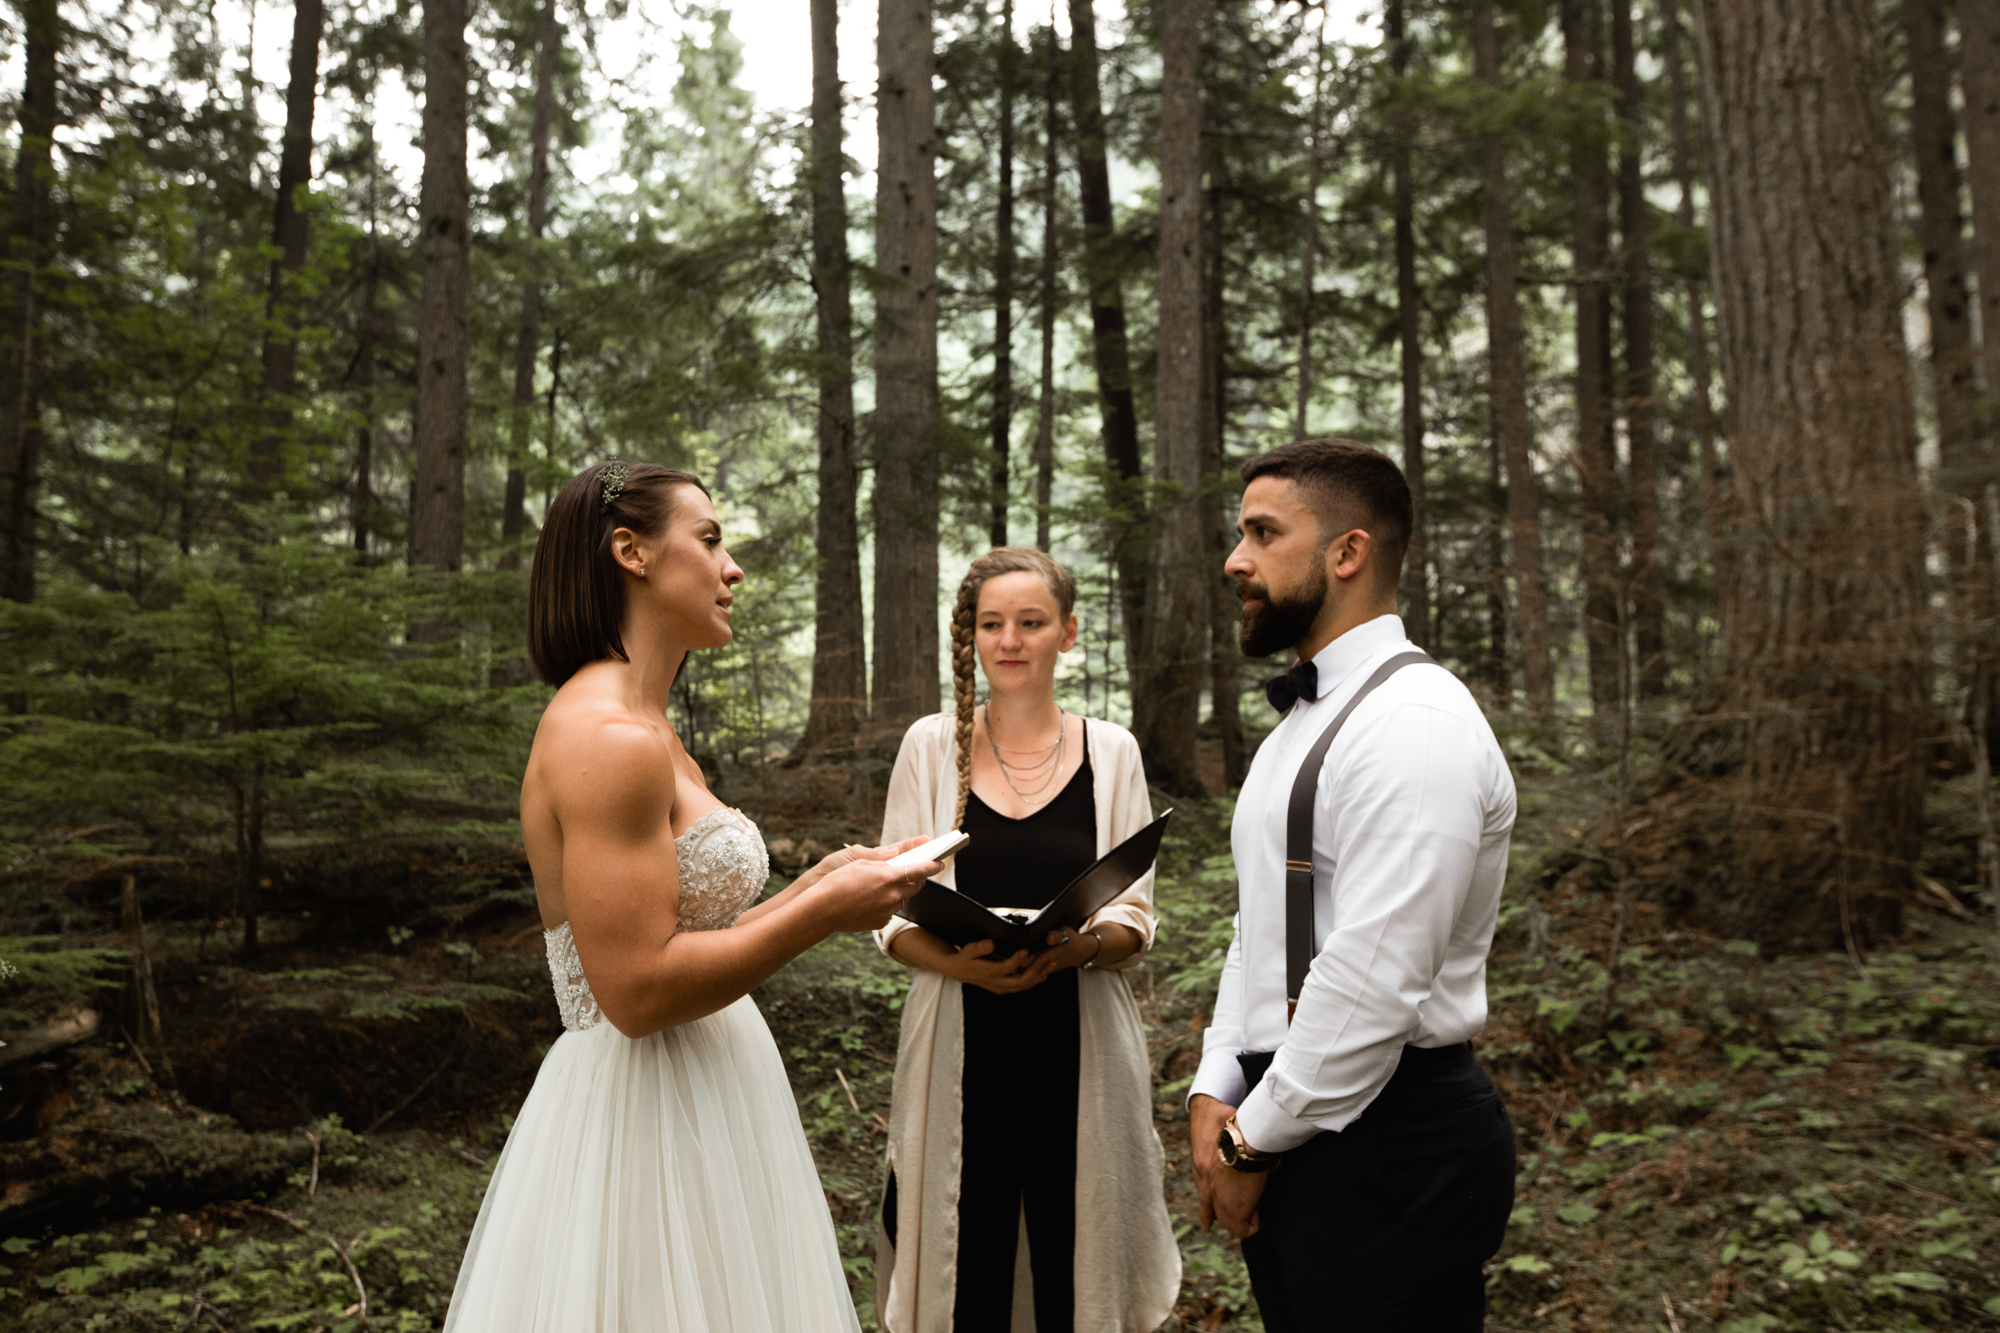 elopement ceremony in BC forest